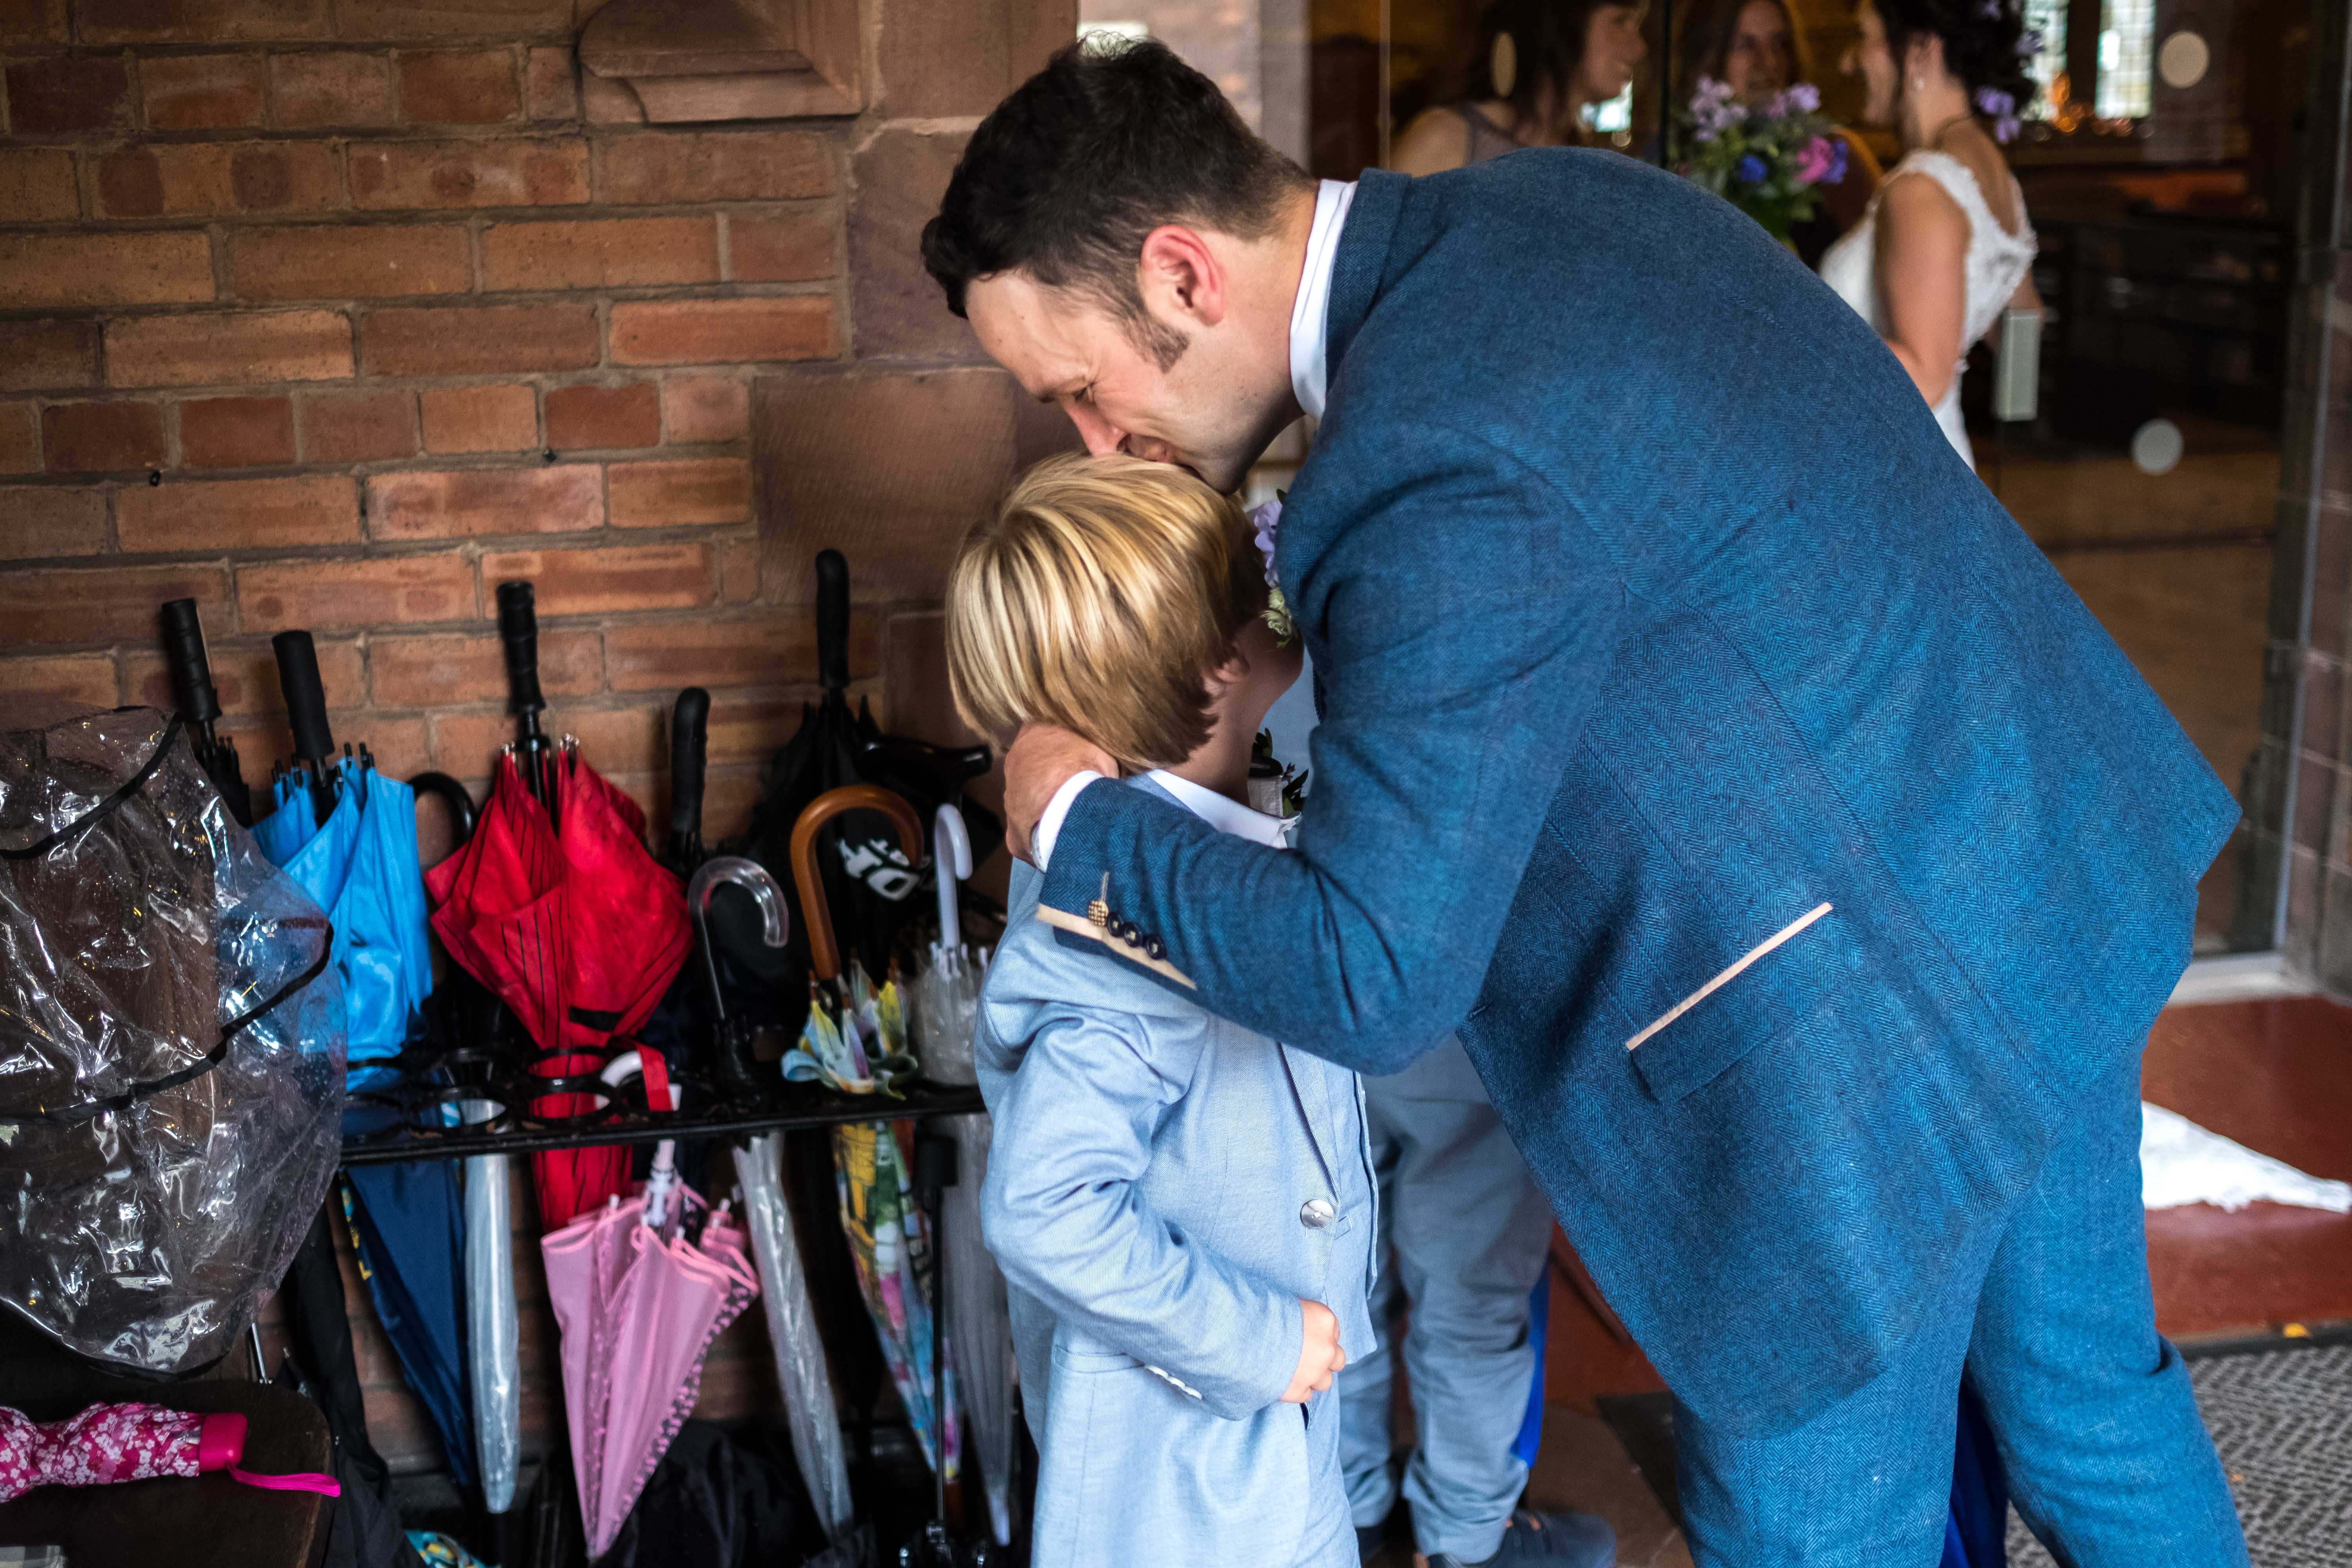 Groom hugging a young family member following the wedding ceremony at All Saints church in Chester.